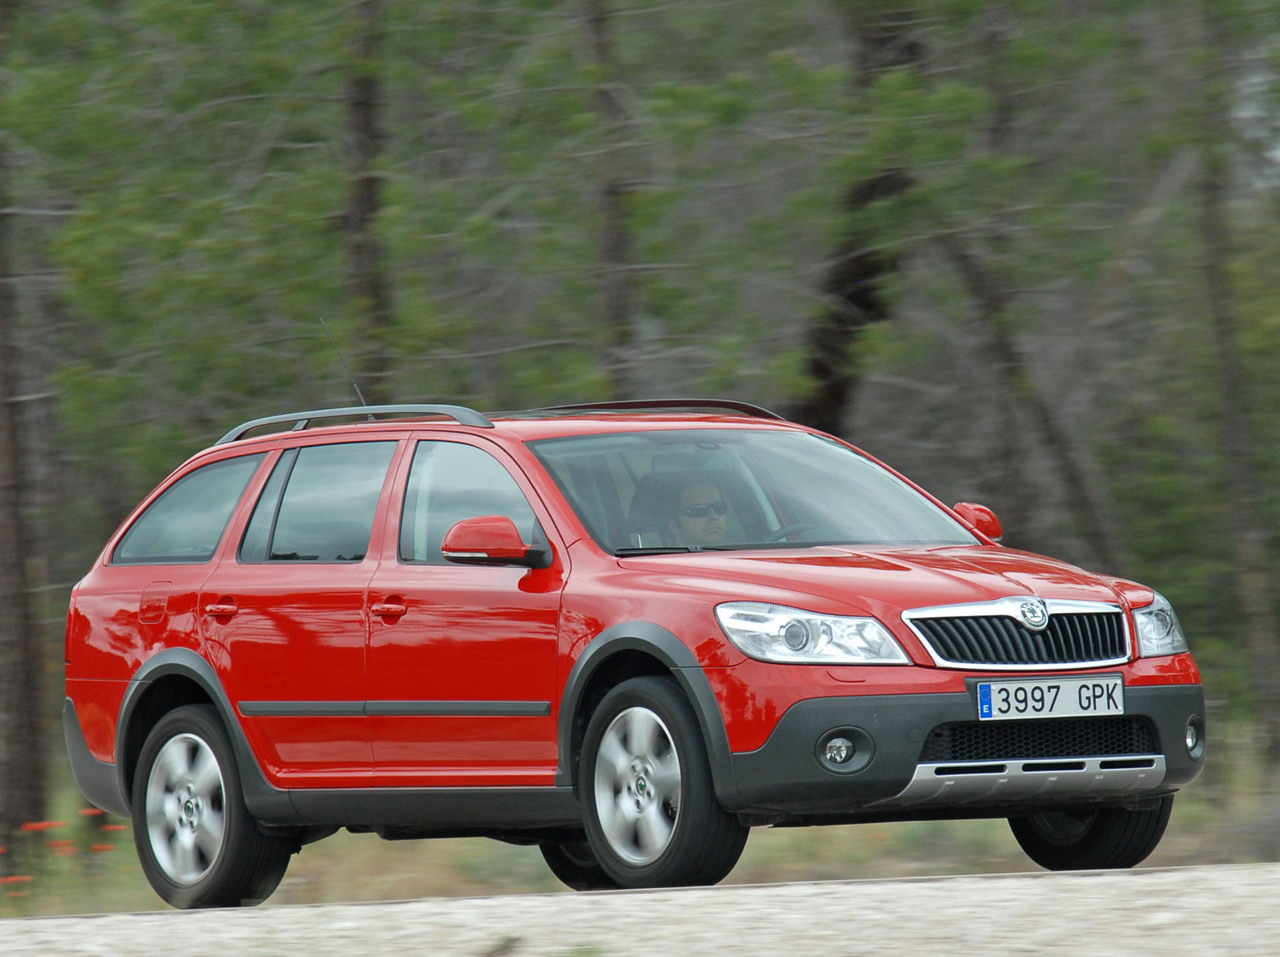 fotos del skoda scout 2 0 tdi 140 cv dpf 4x4. Black Bedroom Furniture Sets. Home Design Ideas